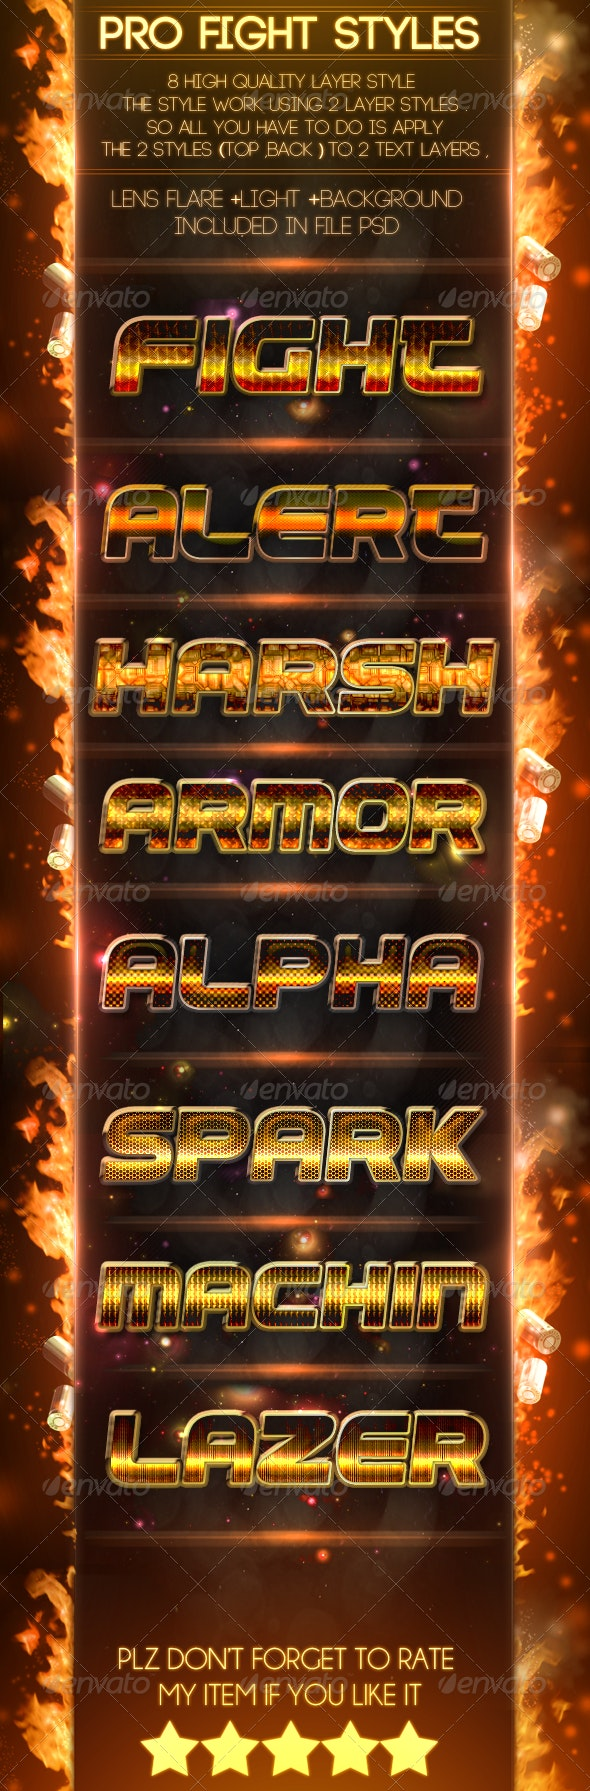 Pro Fight [Styles] - Text Effects Styles